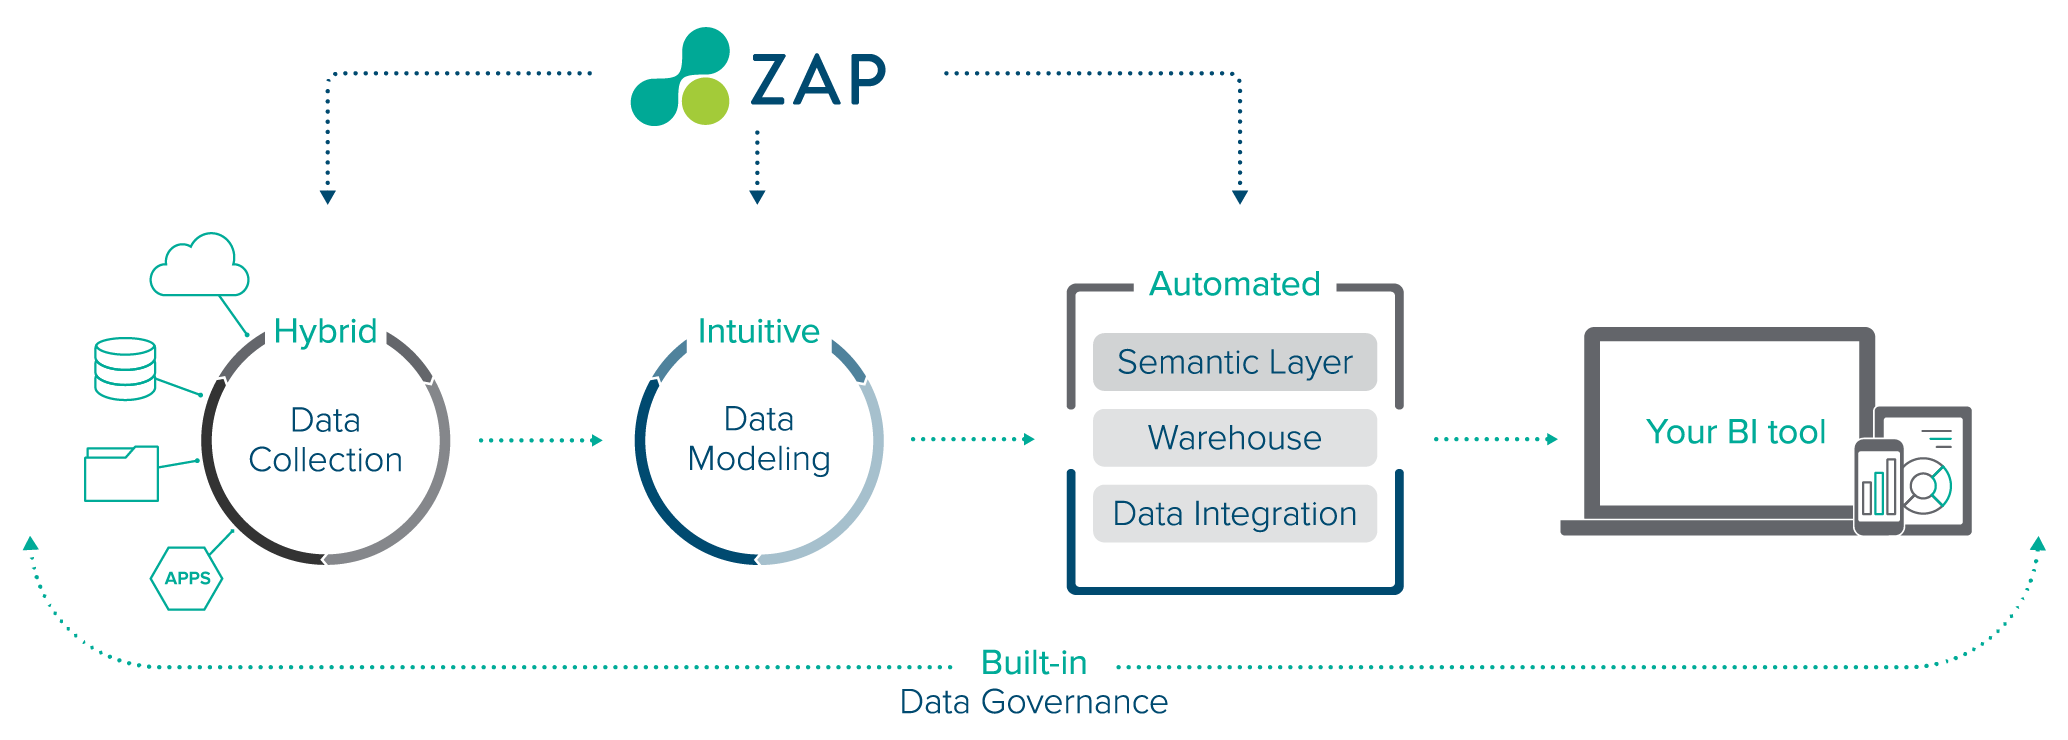 ZAP Product – Data Hub – Desktop View